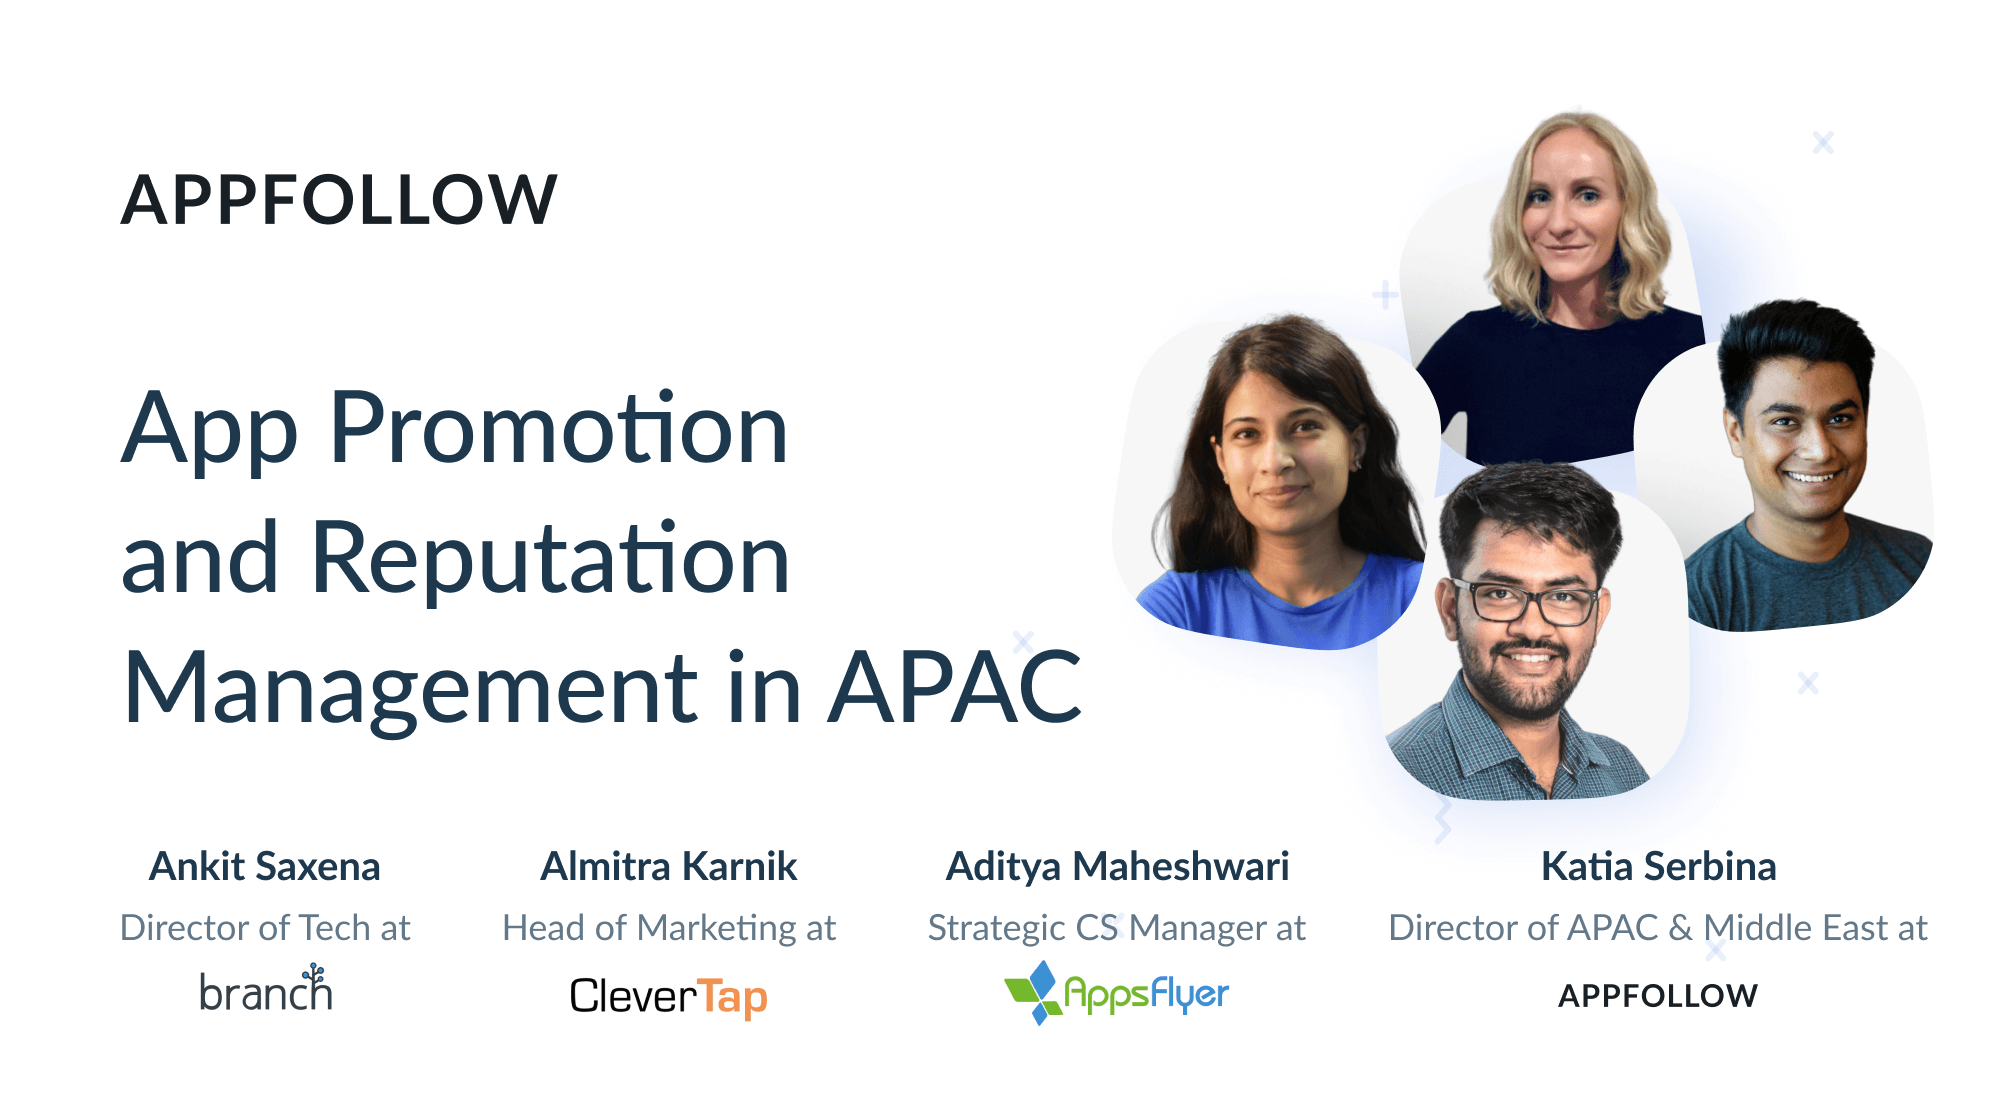 Webinar Recording: App Promotion and Reputation Management in APAC